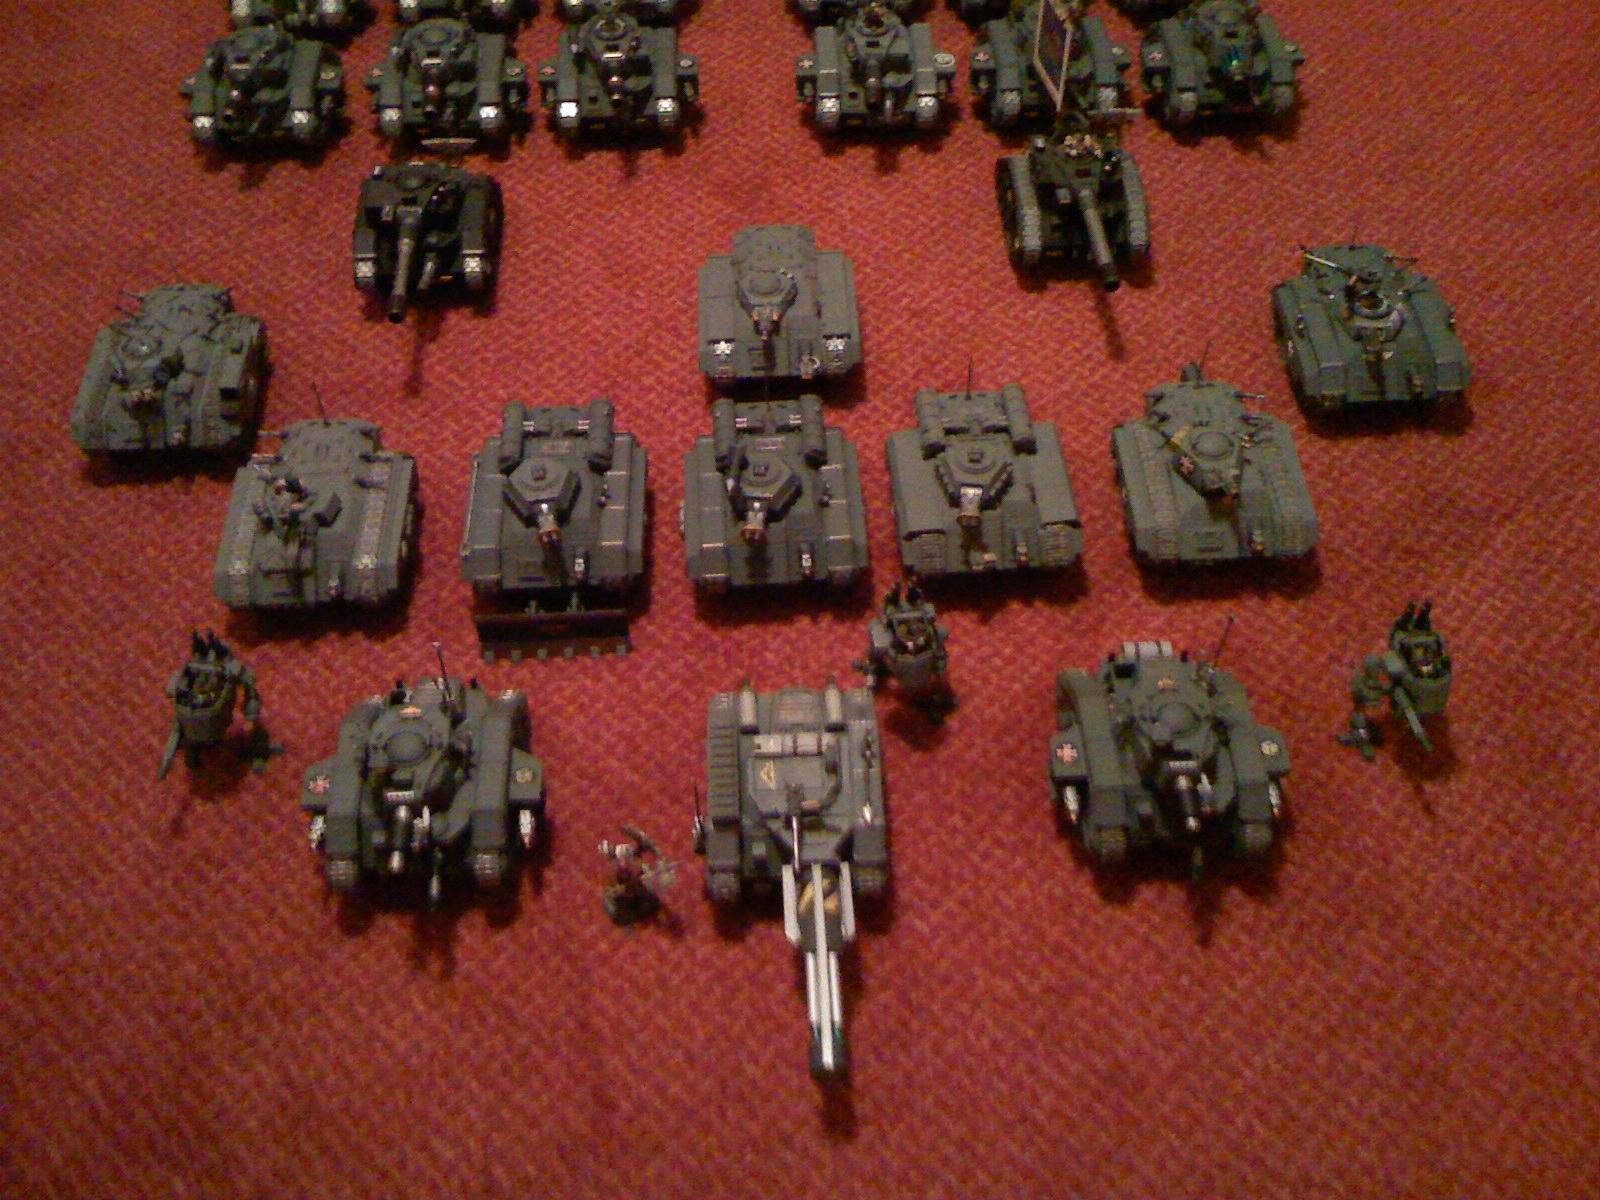 Armored Company, Imperial Guard, Mechanised Infantry, Warhammer 40,000